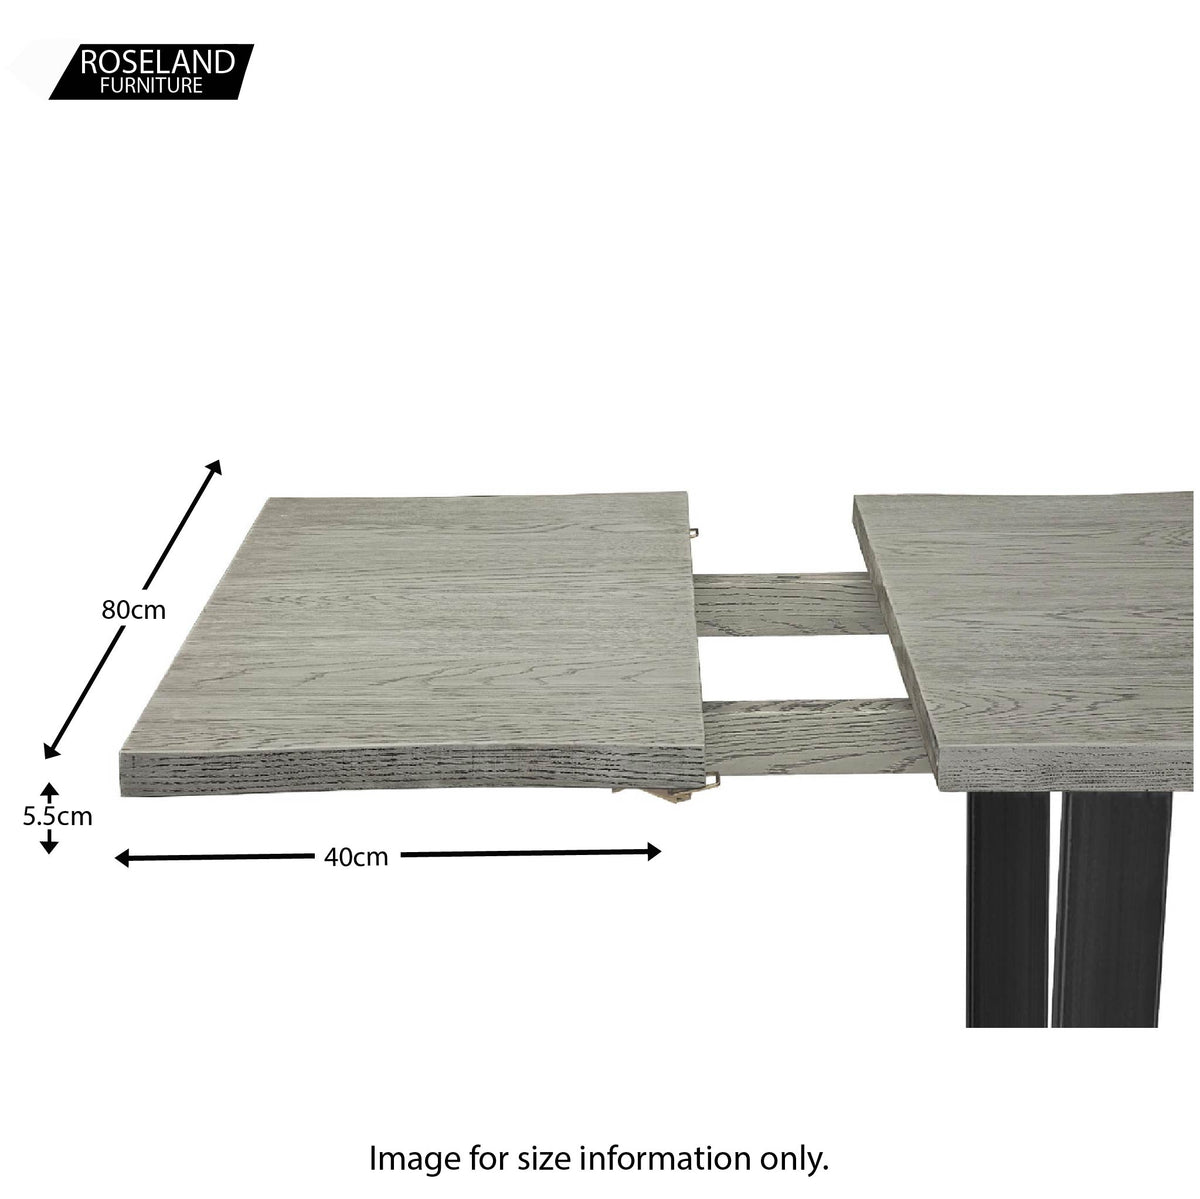 Dimensions for the Soho Grey Wooden Dining Table Extension Leaf